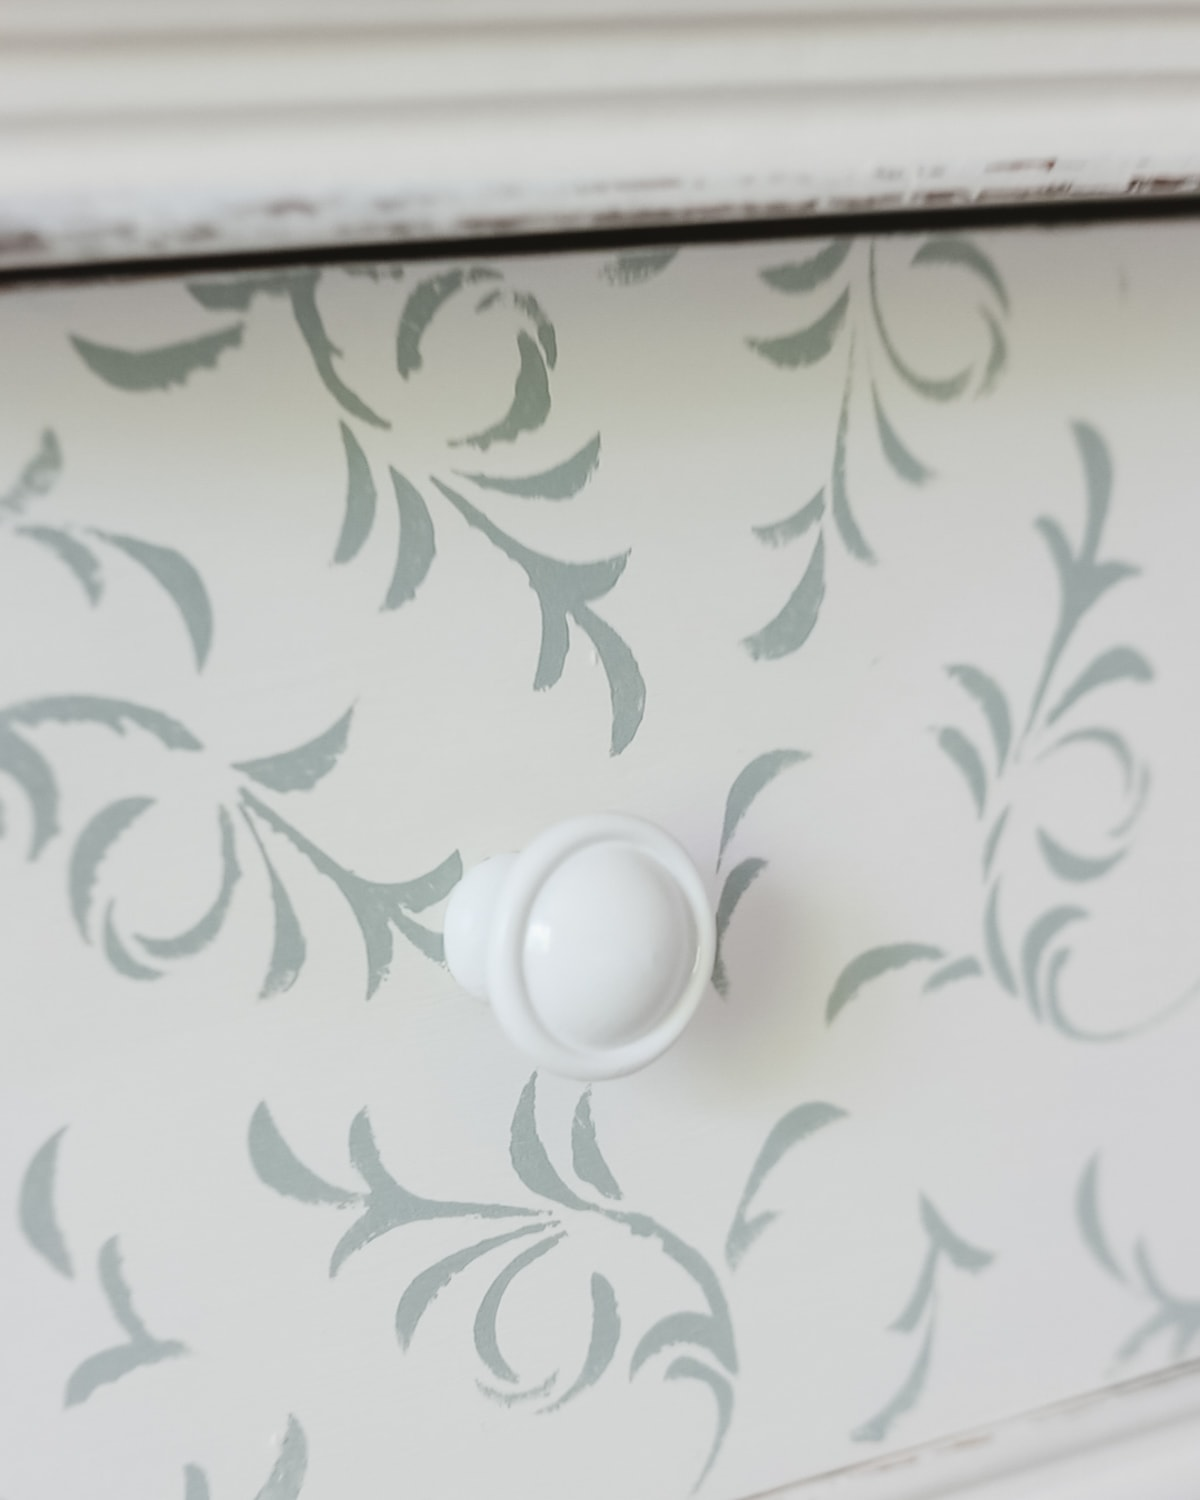 A close-up look at a knob spray-painted white and installed on a stenciled dresser.